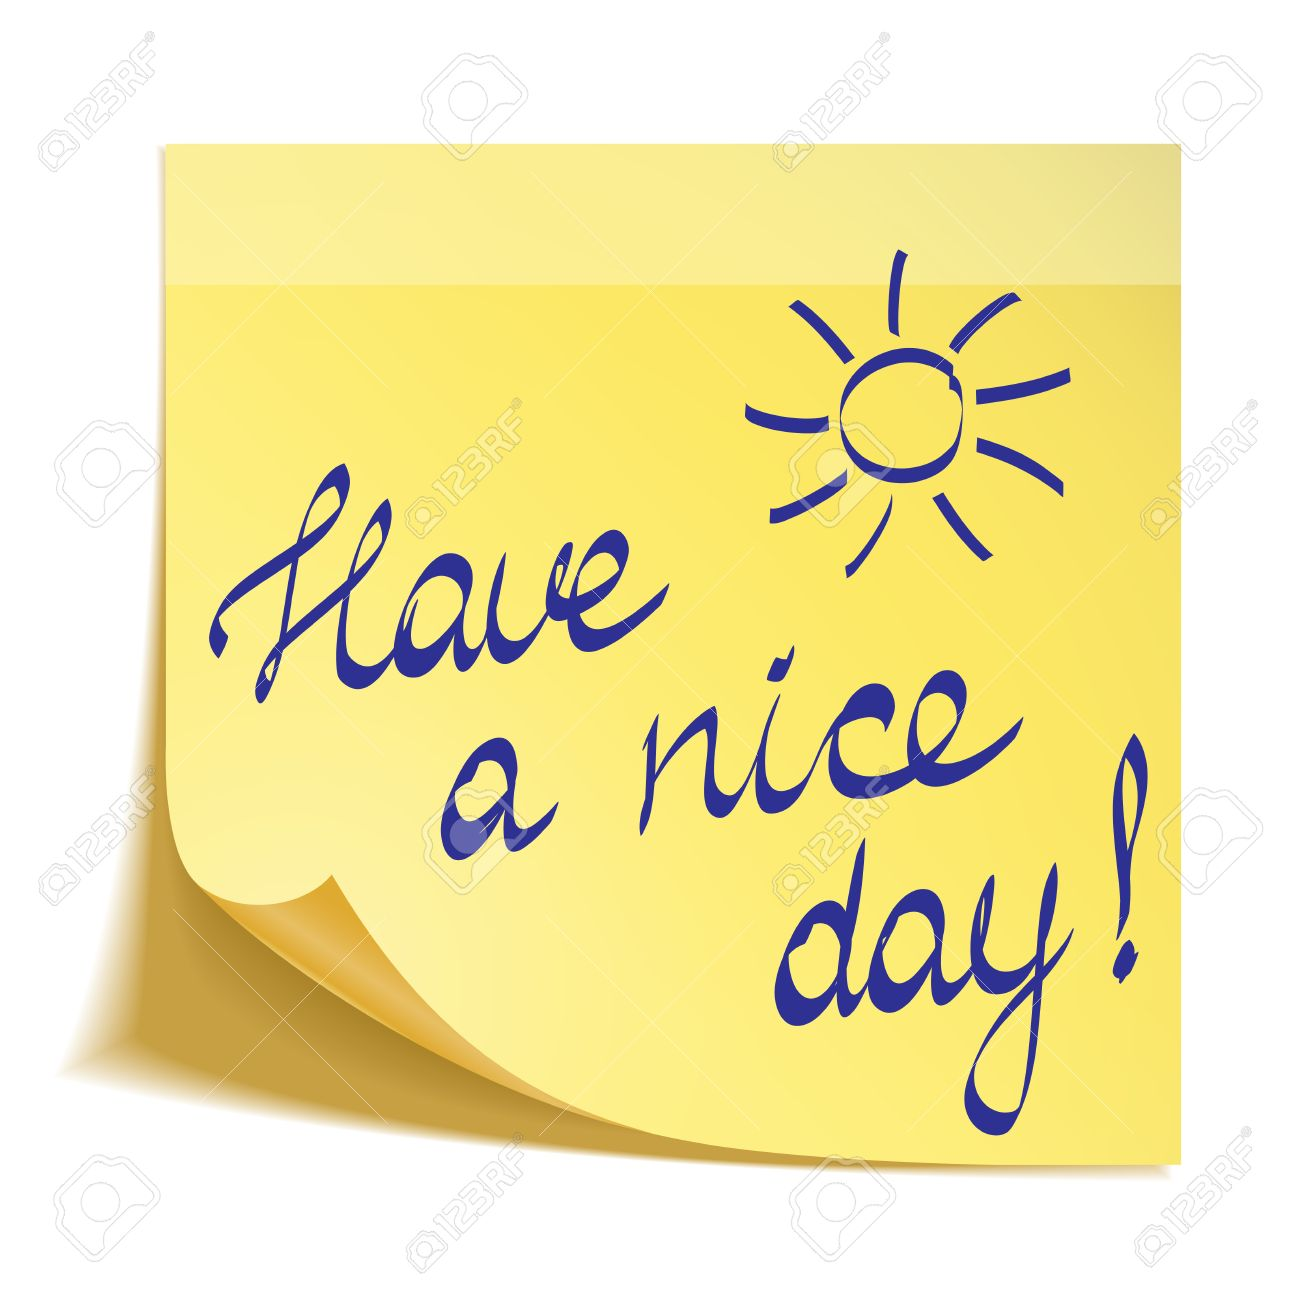 Have a nice day note.